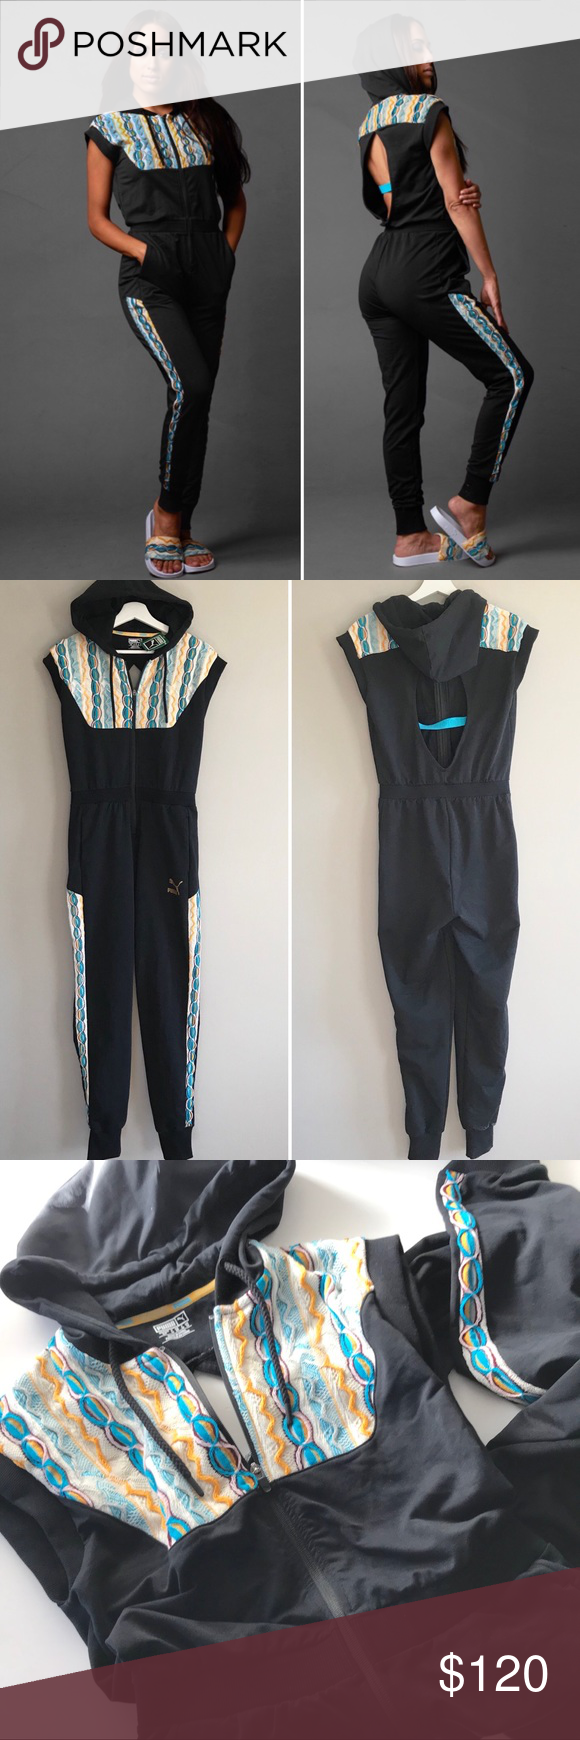 a508251203e8 Puma x Coogi NEW romper jumpsuit hooded black S Puma x Coogi women romper  size small 854616 Black cap sleeve terry hooded jumpsuit with blue sweater  knit ...